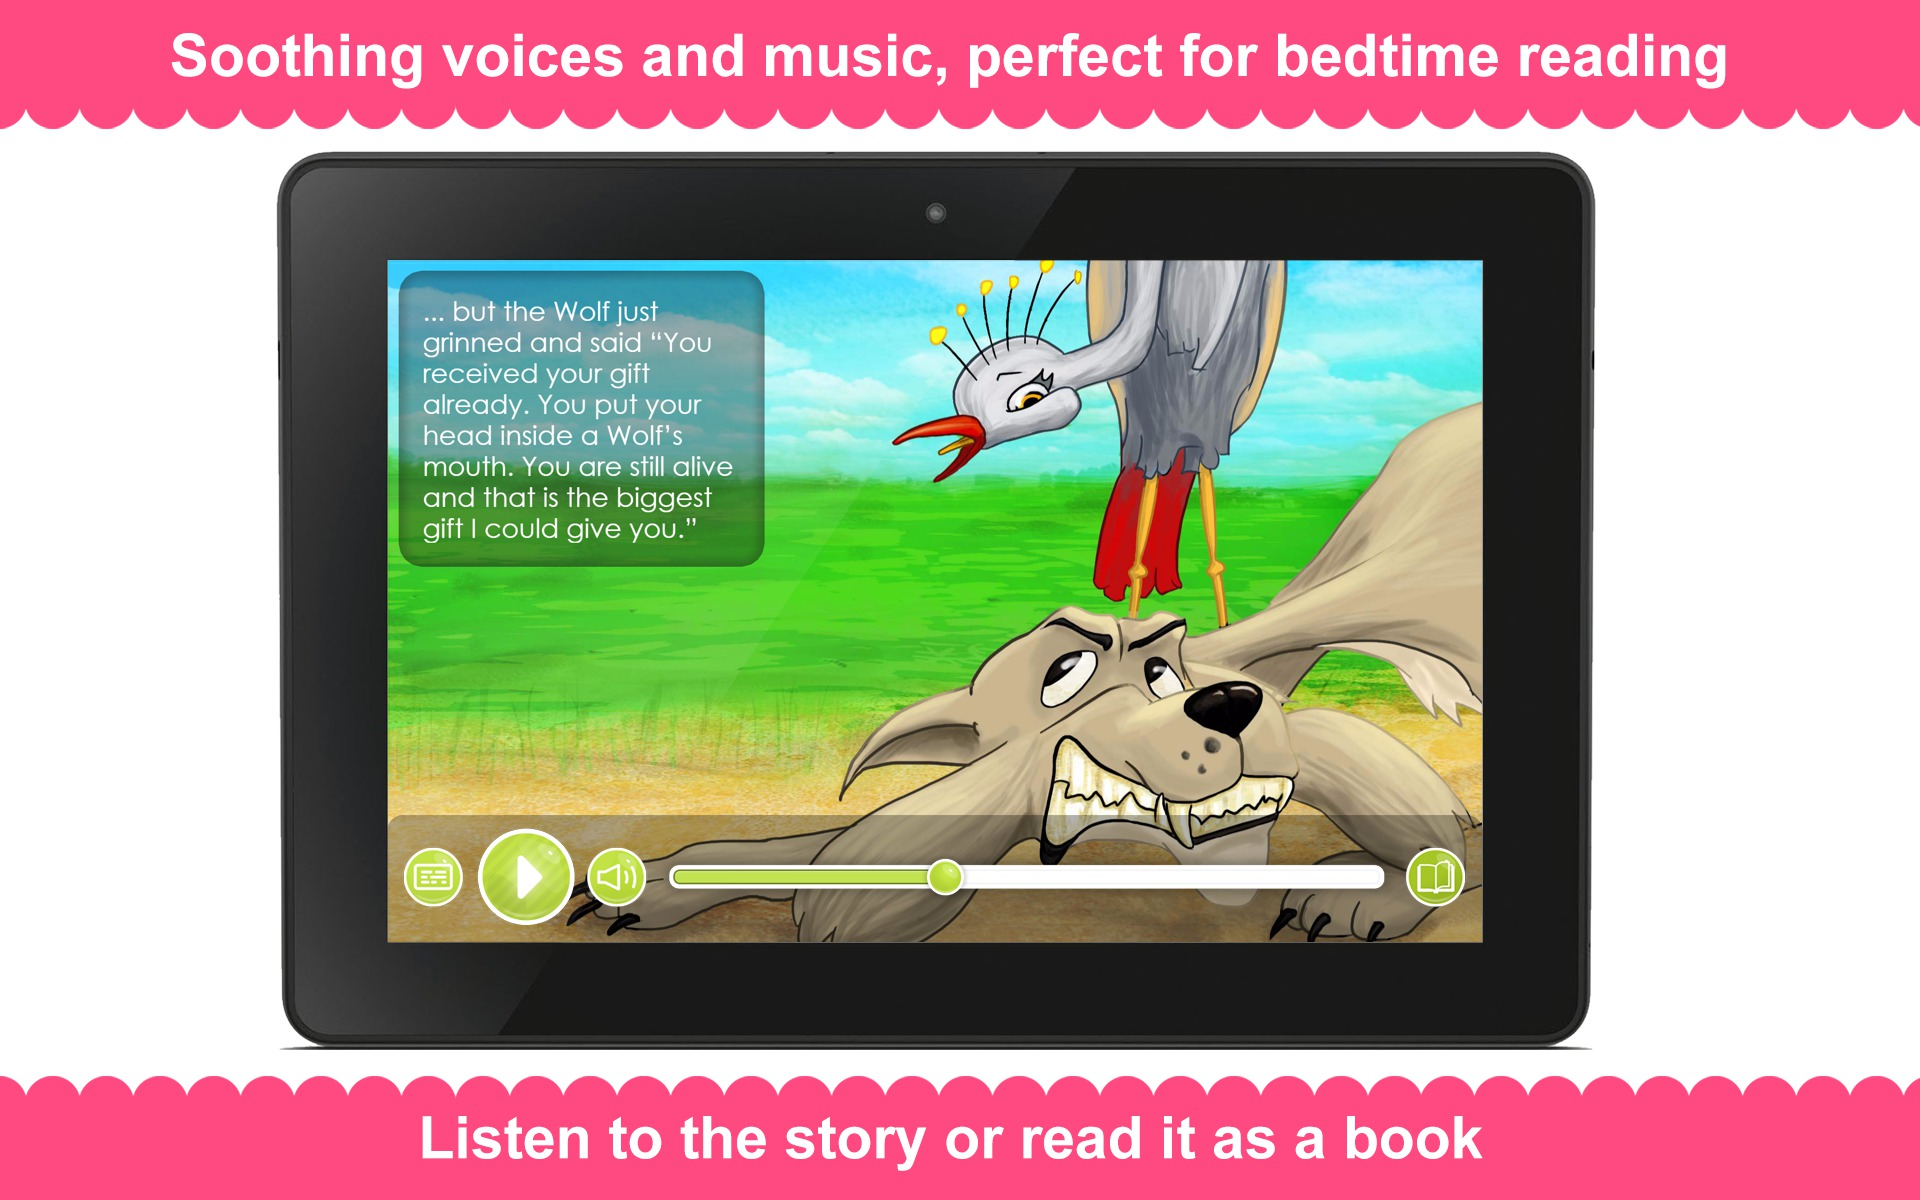 amazoncom the wolf and the crane appstore for android